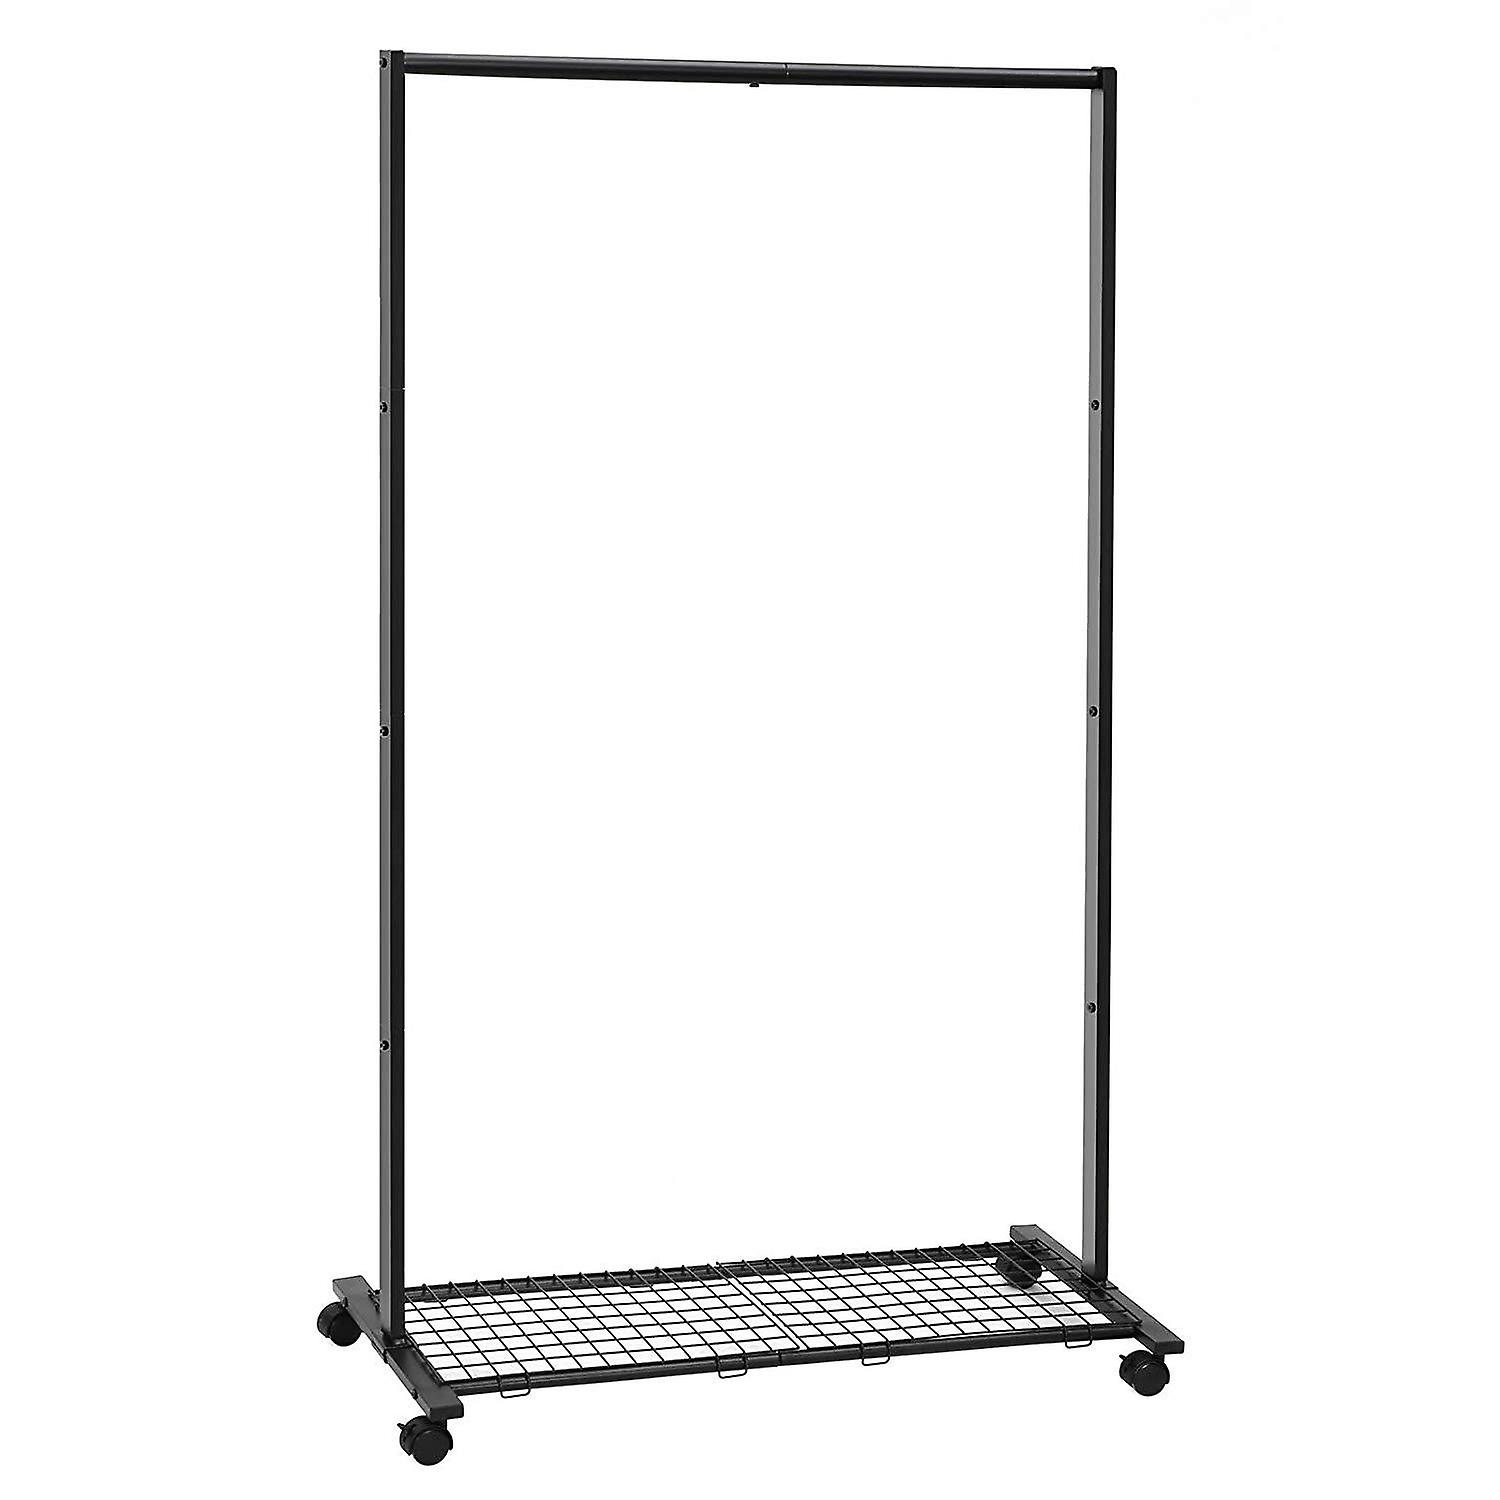 Black metal clothes rack with wheels and carrying grille